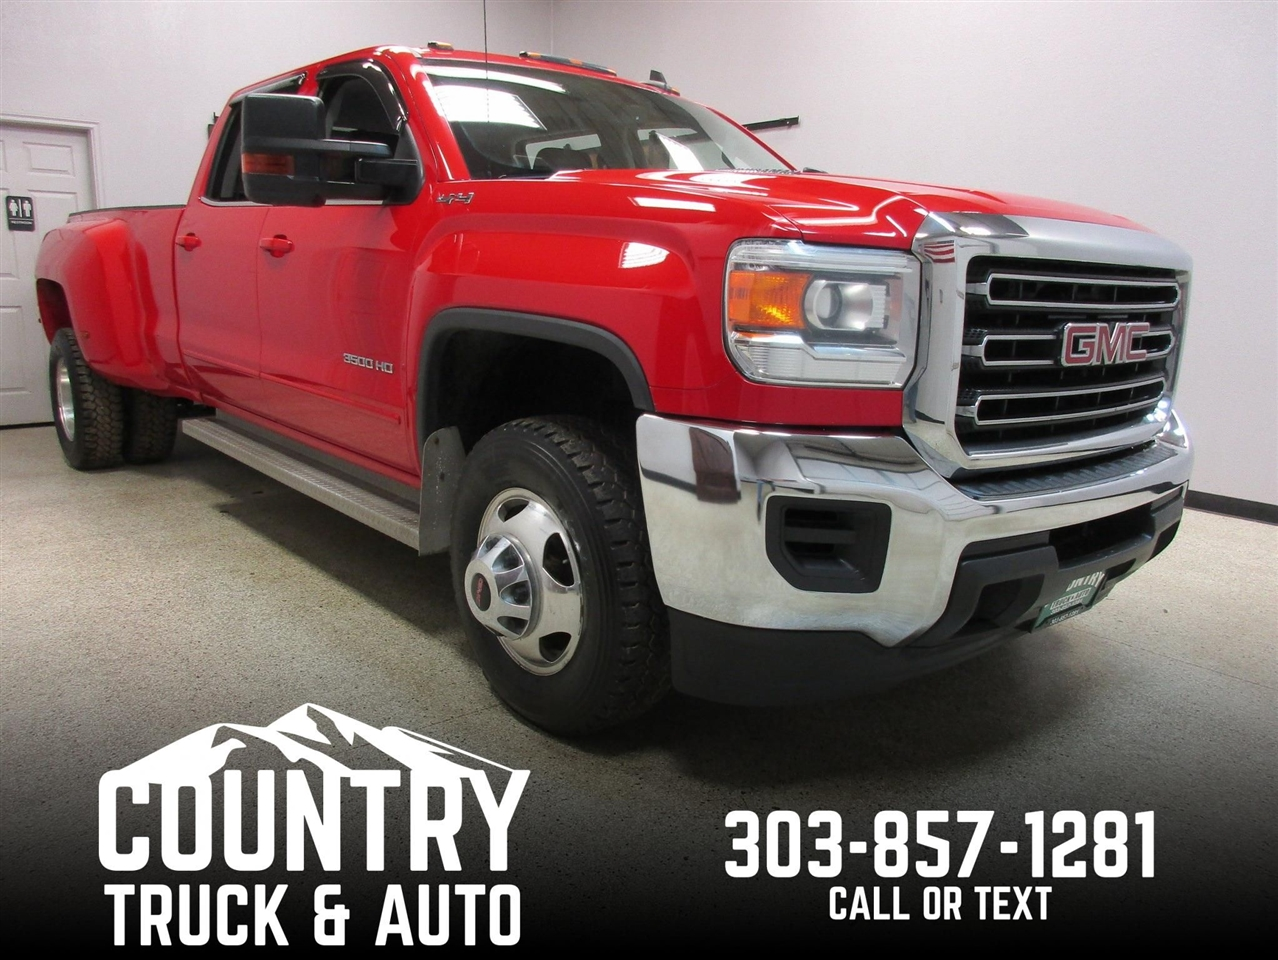 2015 GMC Sierra 3500HD SLE Crew Cab Long Bed 4WD DRW